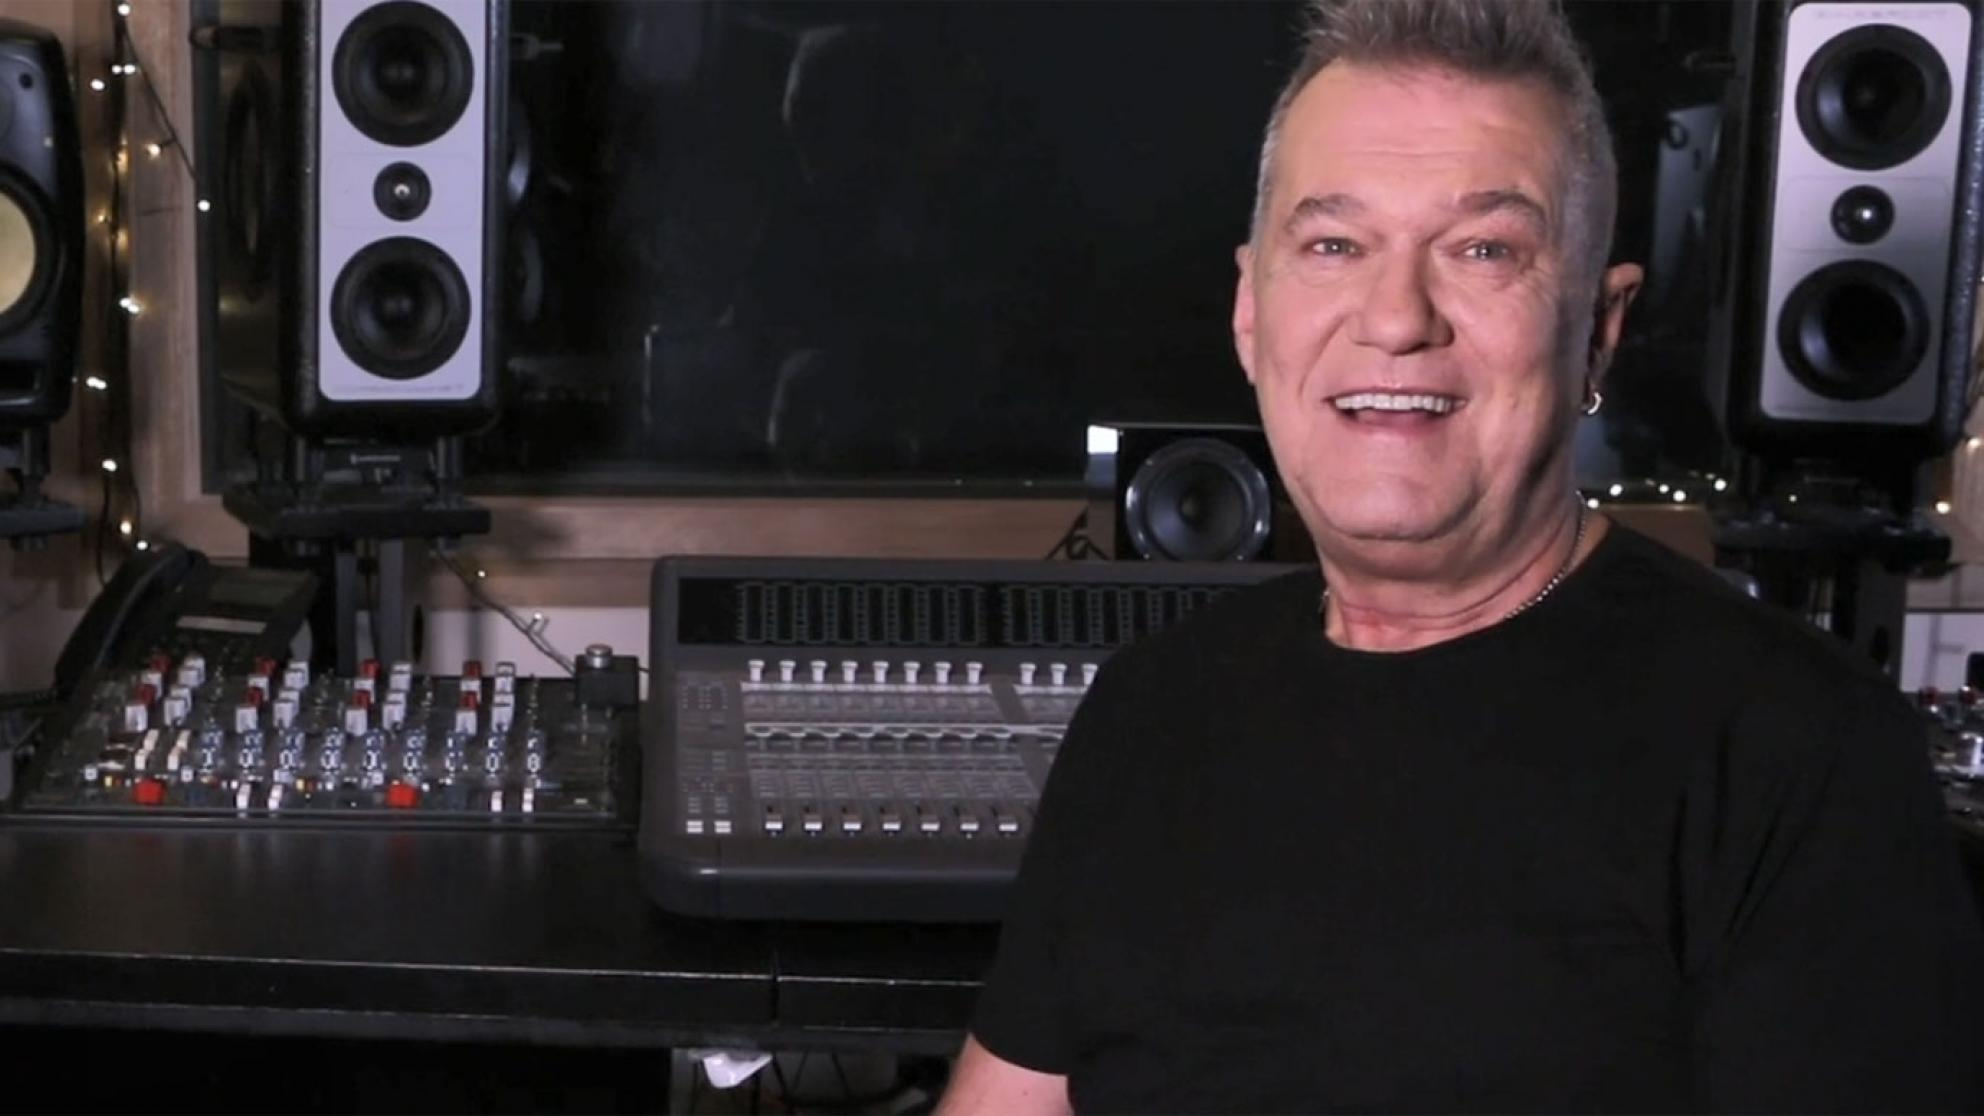 Singer Jimmy Barnes pictured from the chest up, in a black t-shirt and sitting in front of a mixing deck in a recording studio.